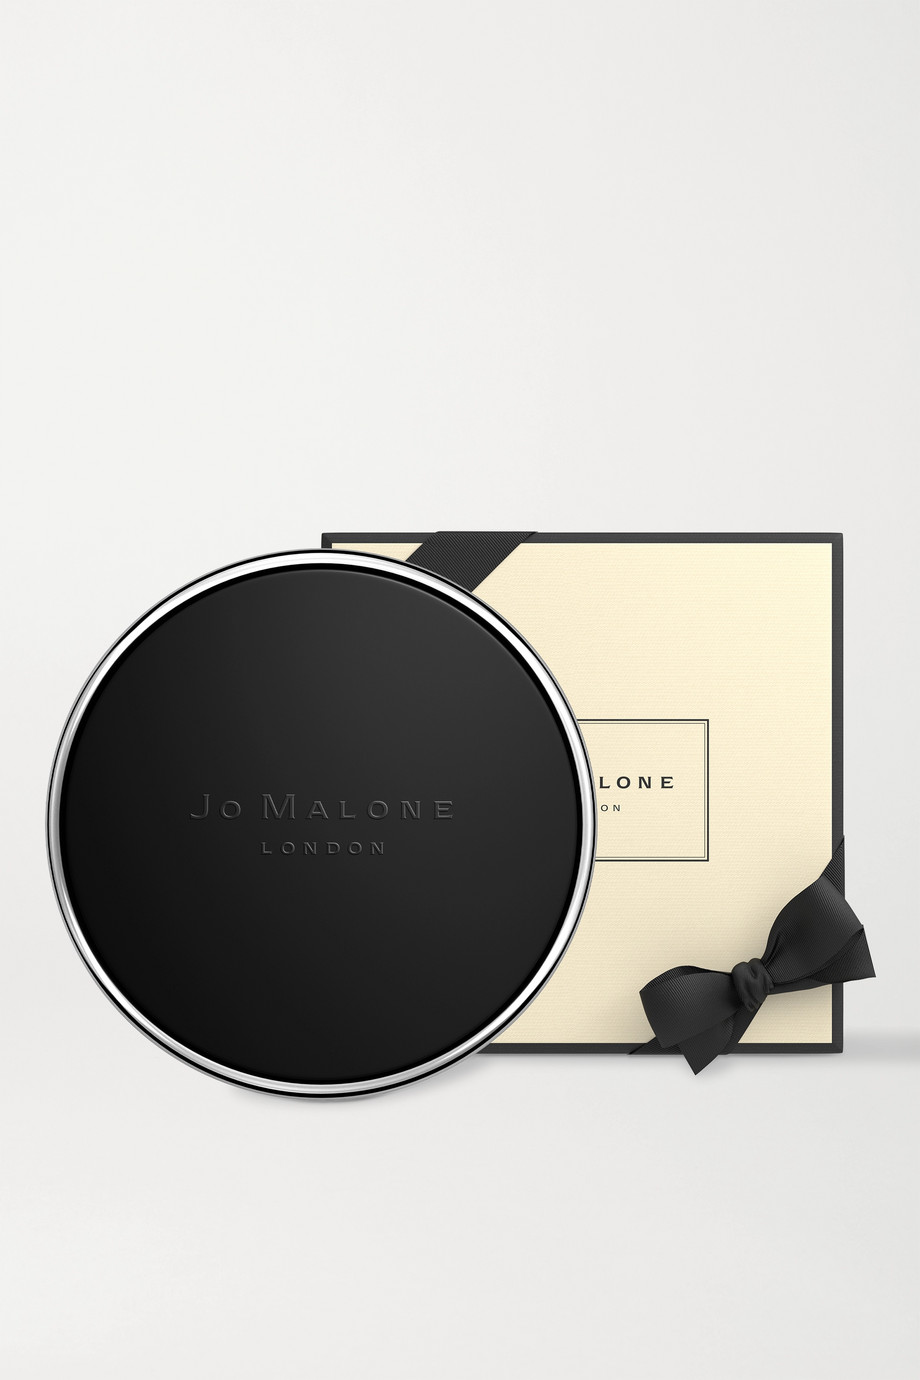 Jo Malone London Scent To Go - Lime Basil & Mandarin